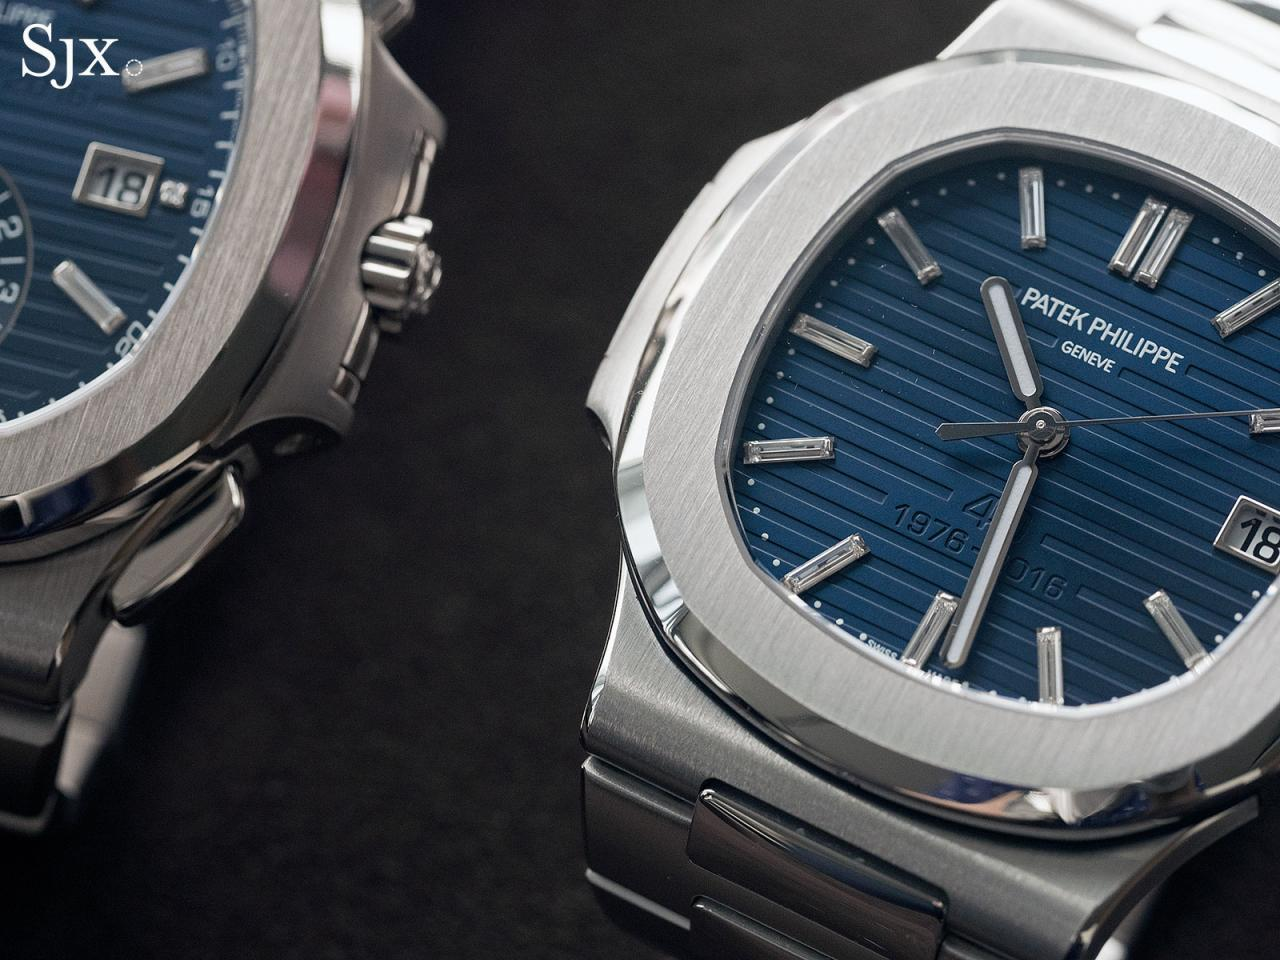 Best Place To Buy Up Close With The Patek Philippe Nautilus 40th